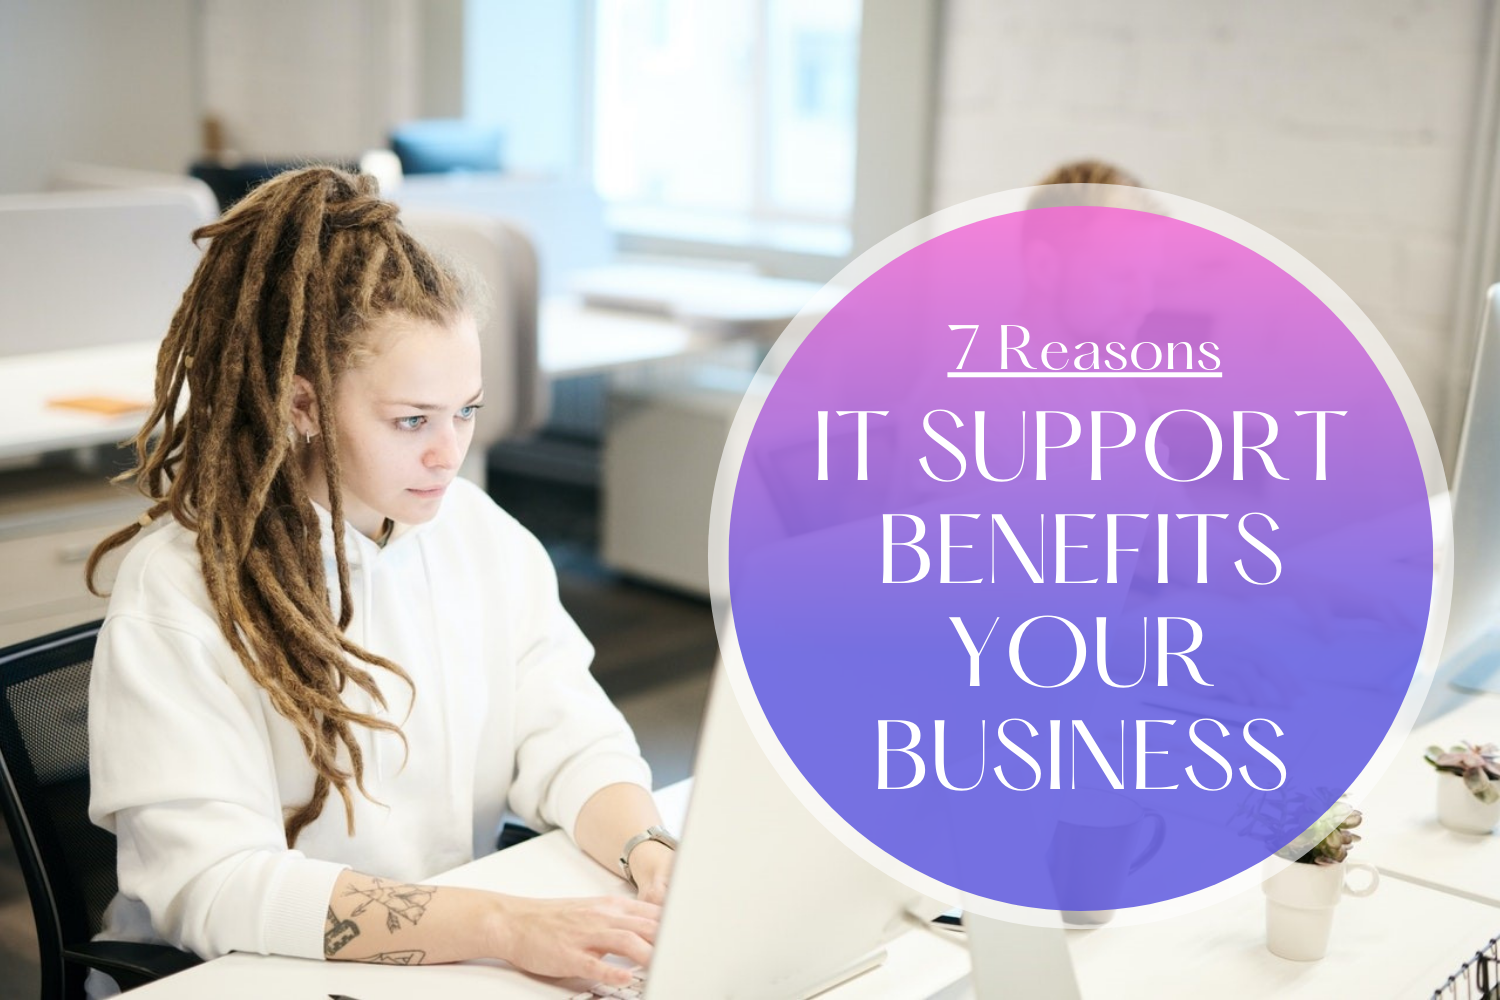 7 Reasons How IT Support Benefits your Business